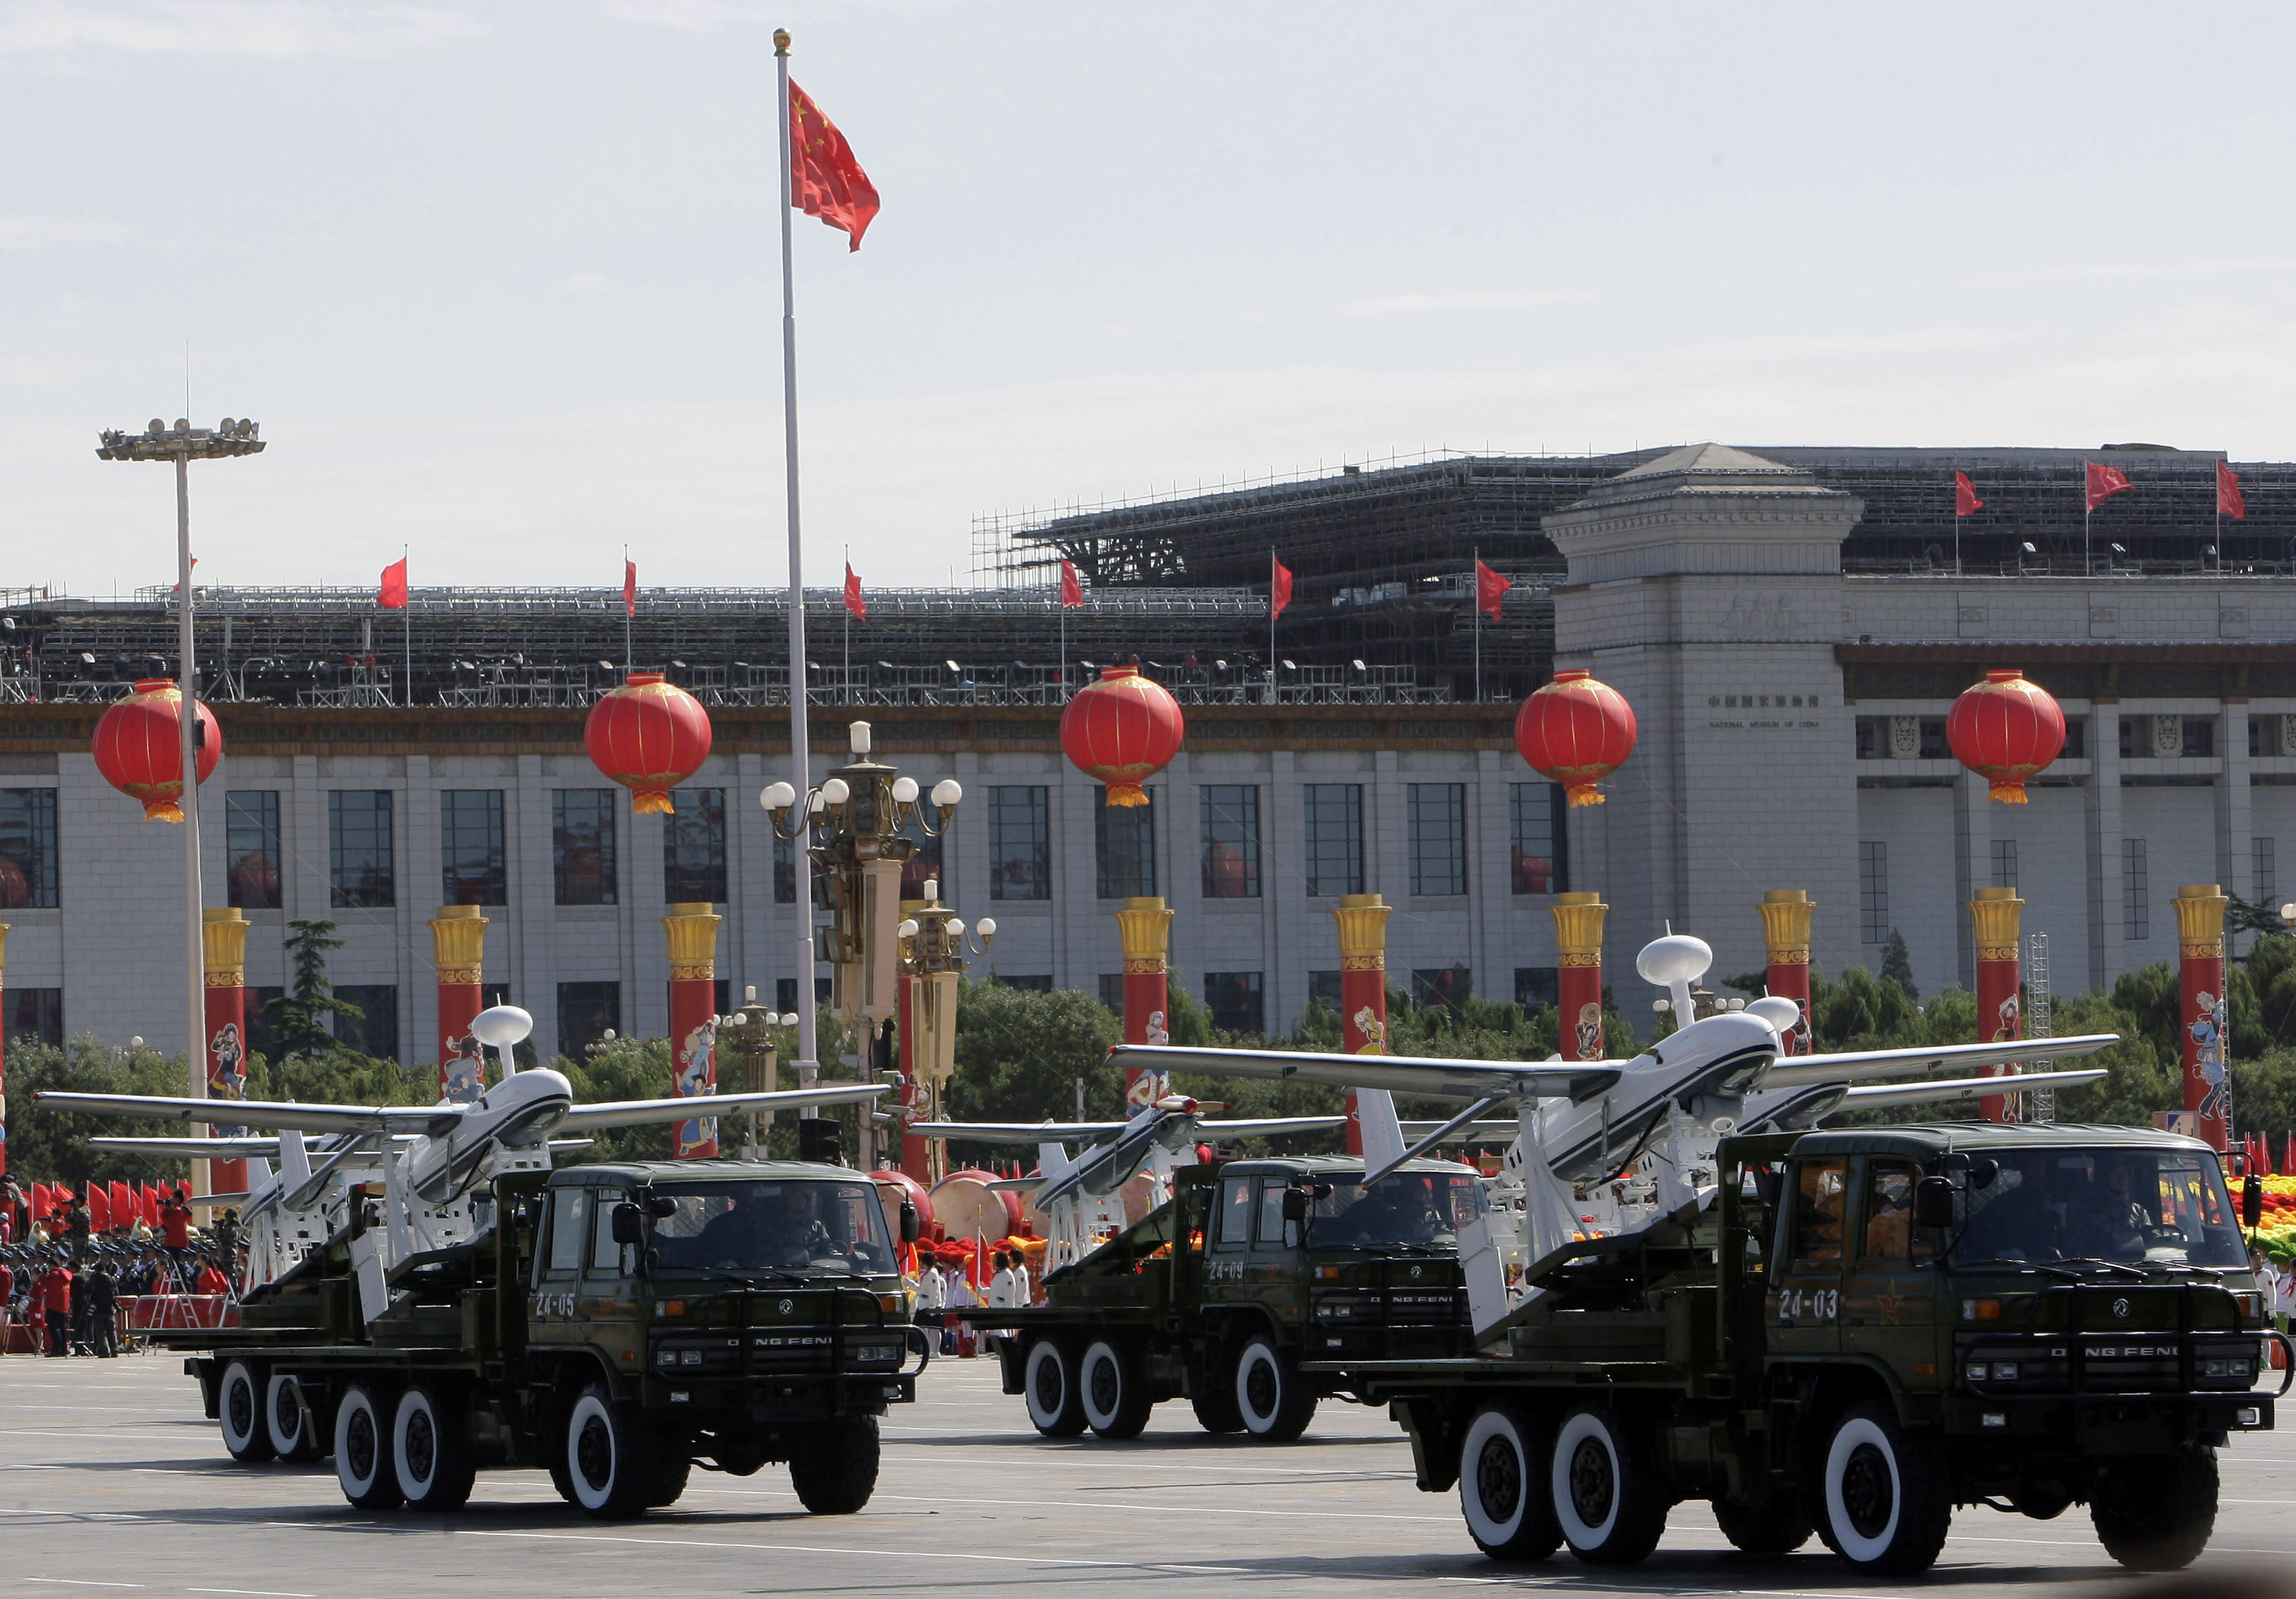 FILE - In this Oct. 1, 2009 file photo, trucks loaded with the Chinese made drones, the ASN-207, take part in a military parade marking China's 60th anniversary held near Tiananmen Square in Beijing. Chinese aerospace firms developed dozens of drones, known also as unmanned aerial vehicles, or UAVs. Many have appeared at air shows and military parades, including some that bear an uncanny resemblance to the Predator, Global Hawk and Reaper models used with deadly effect by the U.S. Air Force and CIA. Analysts say that although China still trails the U.S. and Israel, the industry leaders, its technology is maturing rapidly and on the cusp of widespread use for surveillance and combat strikes. (AP Photo/Vincent Thian, File)